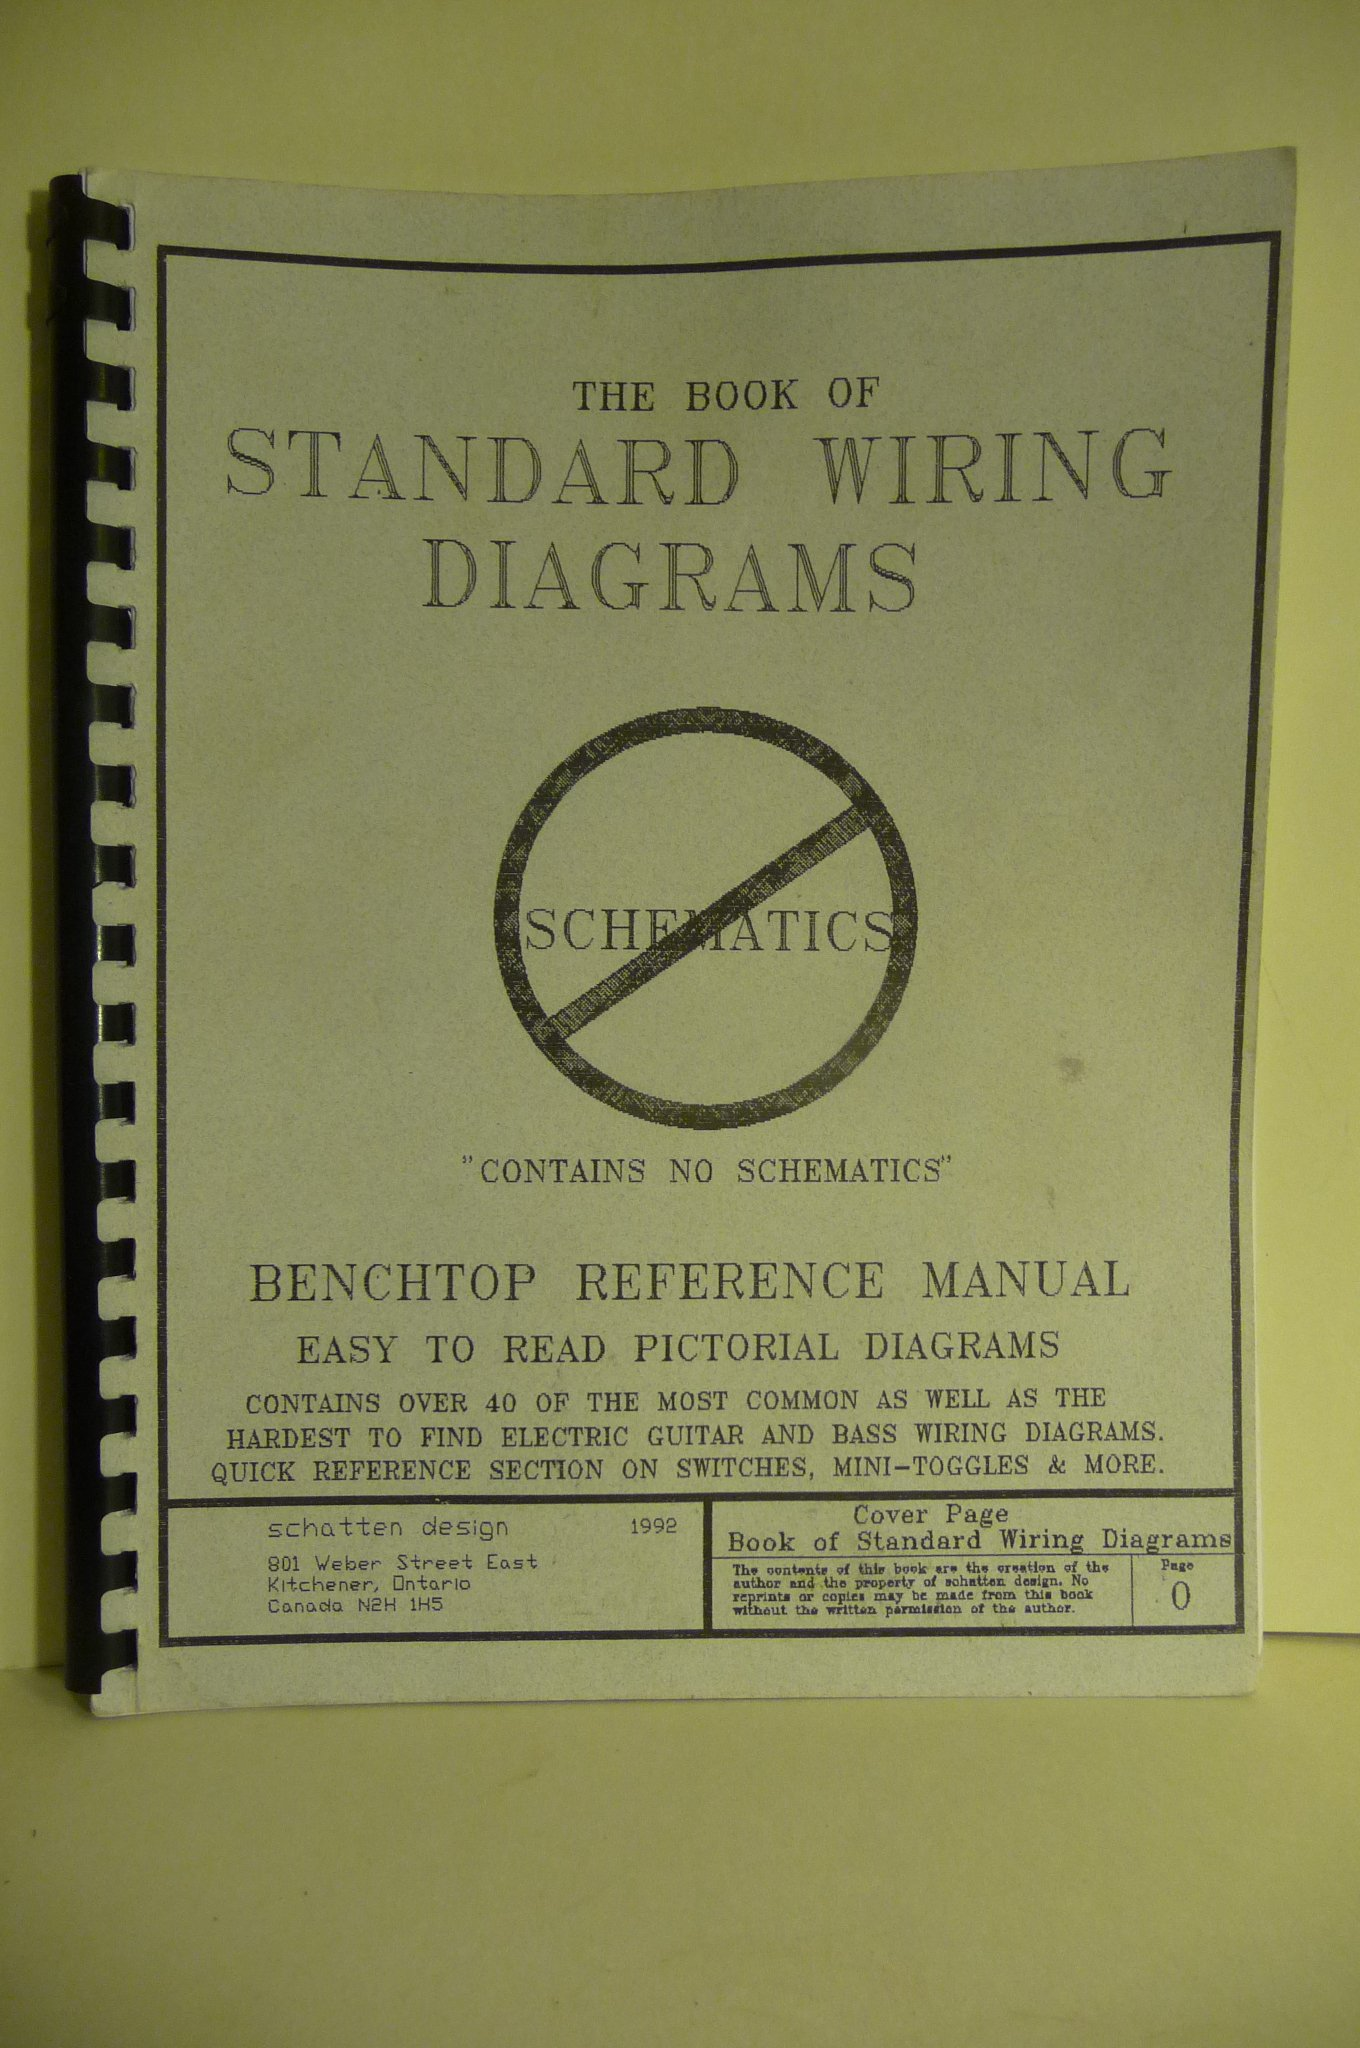 81WEzjYIb4L the new book of standard wiring diagrams benchtop reference  at bayanpartner.co